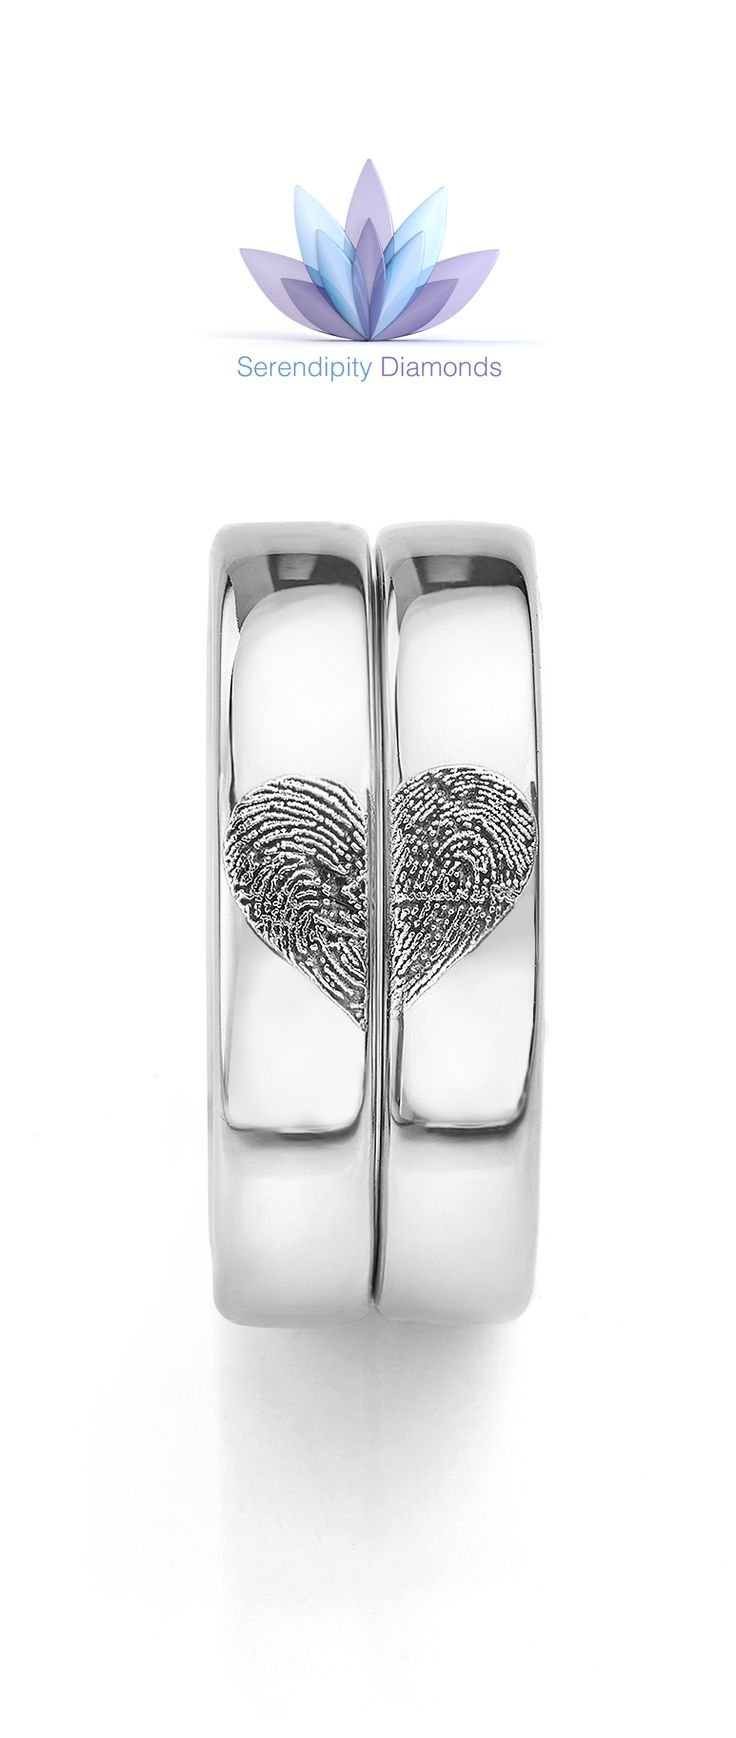 mens love besttohave i sets you engraved his wedding jewellery rings image hers couple and ring matching titanium with